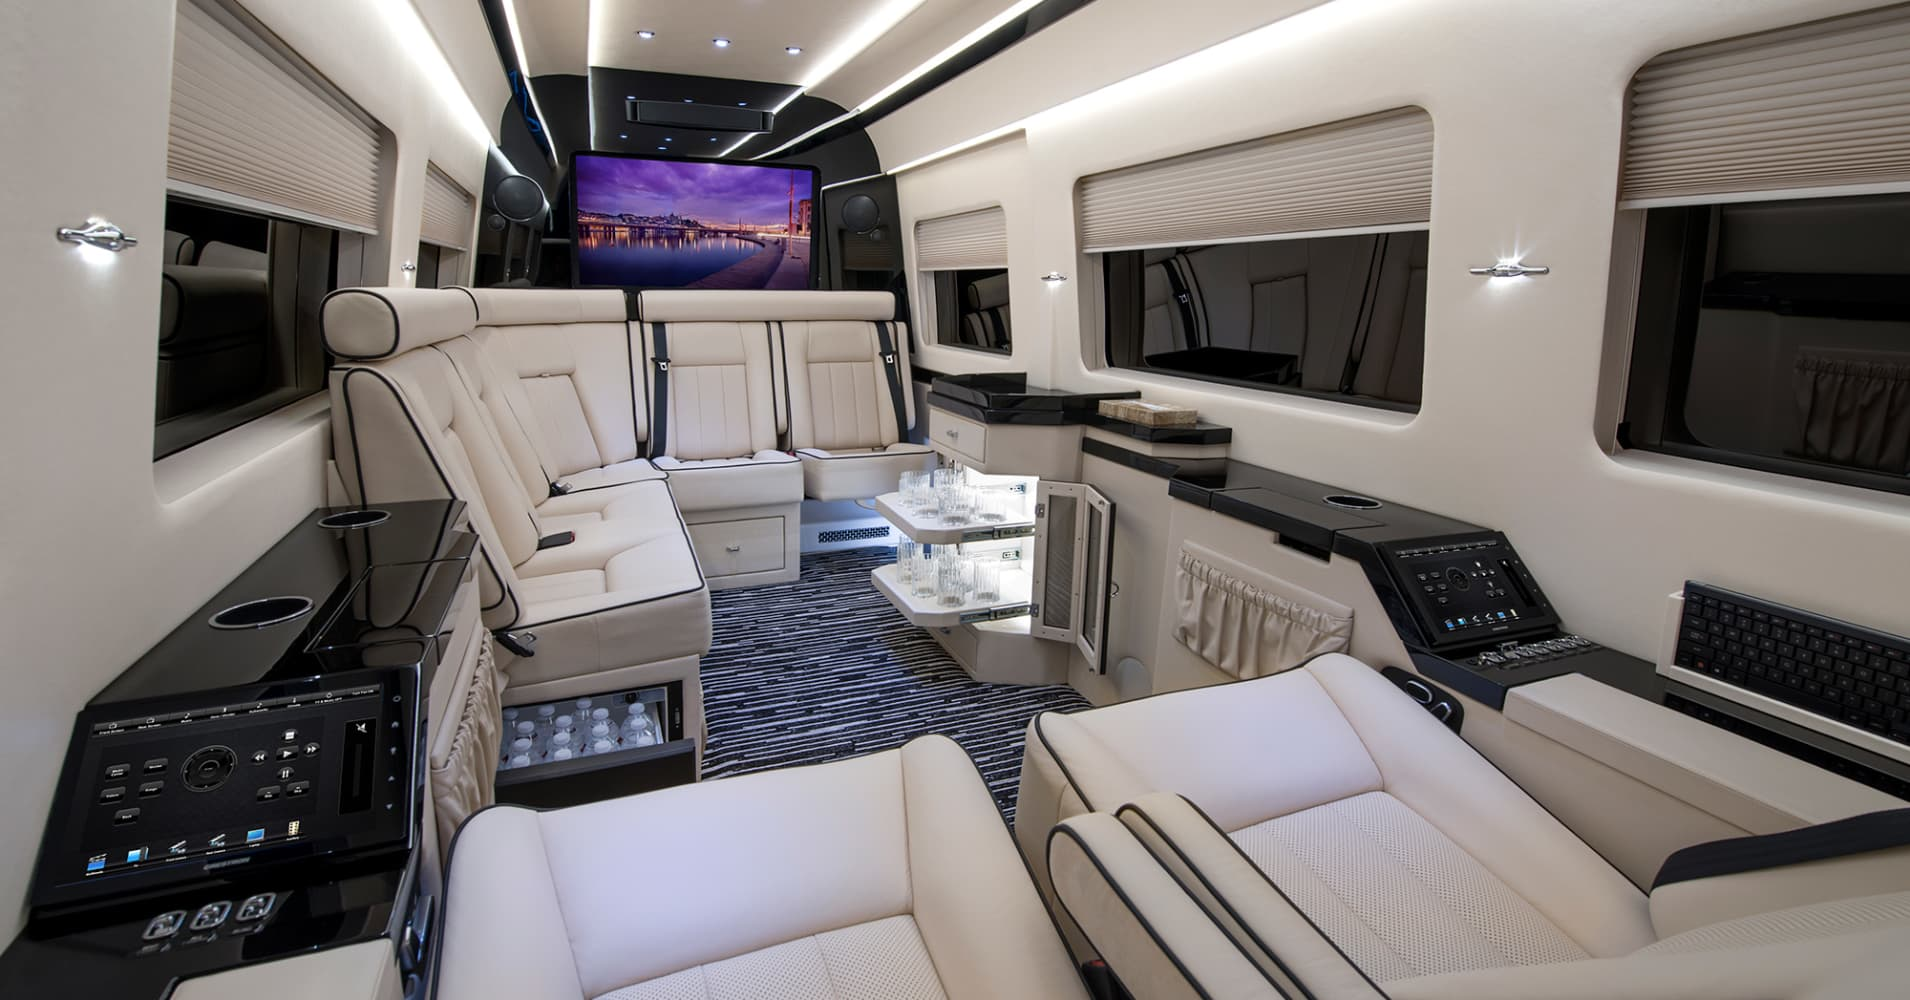 The 400 000 Private Jet Of Vans